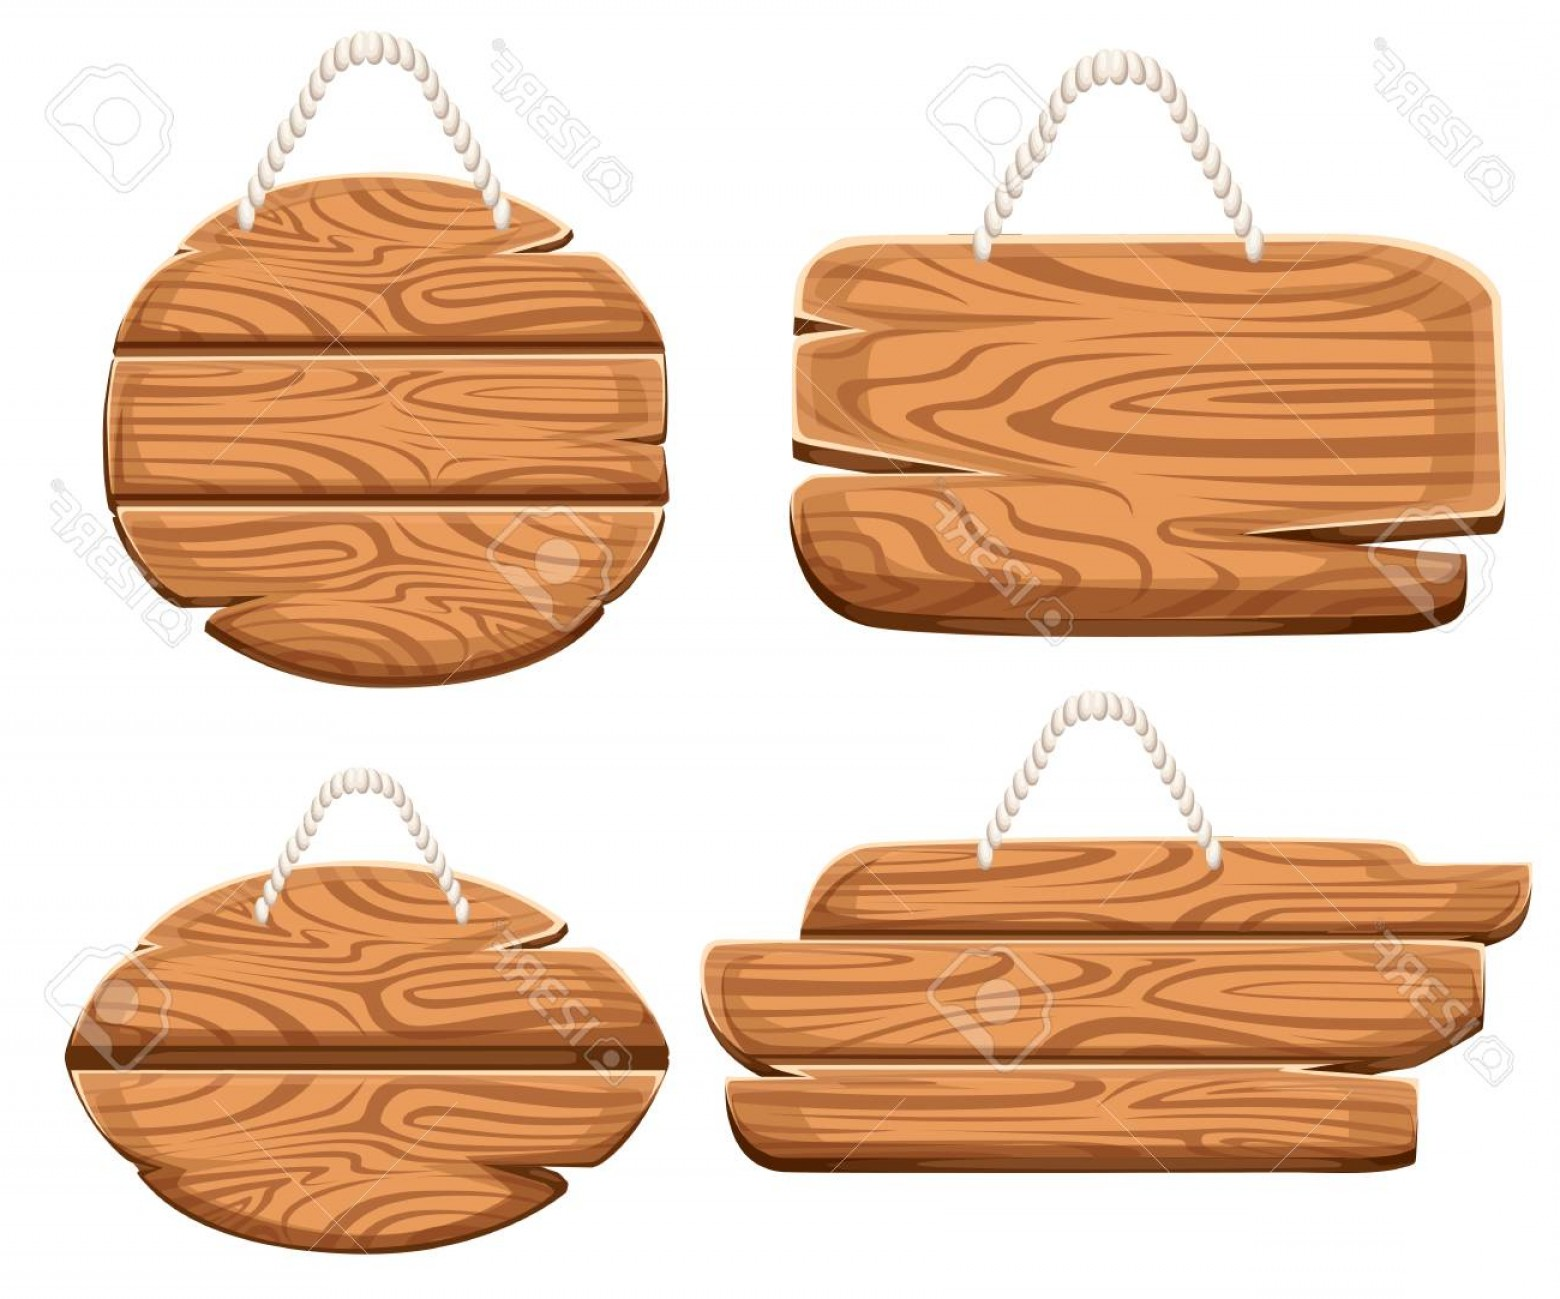 Old Wood Sign Vector: Photostock Vector Set Of Wooden Plaques On Rope In Cartoon Style Wooden Sign Board Collections Wood Sign Old Road Plan